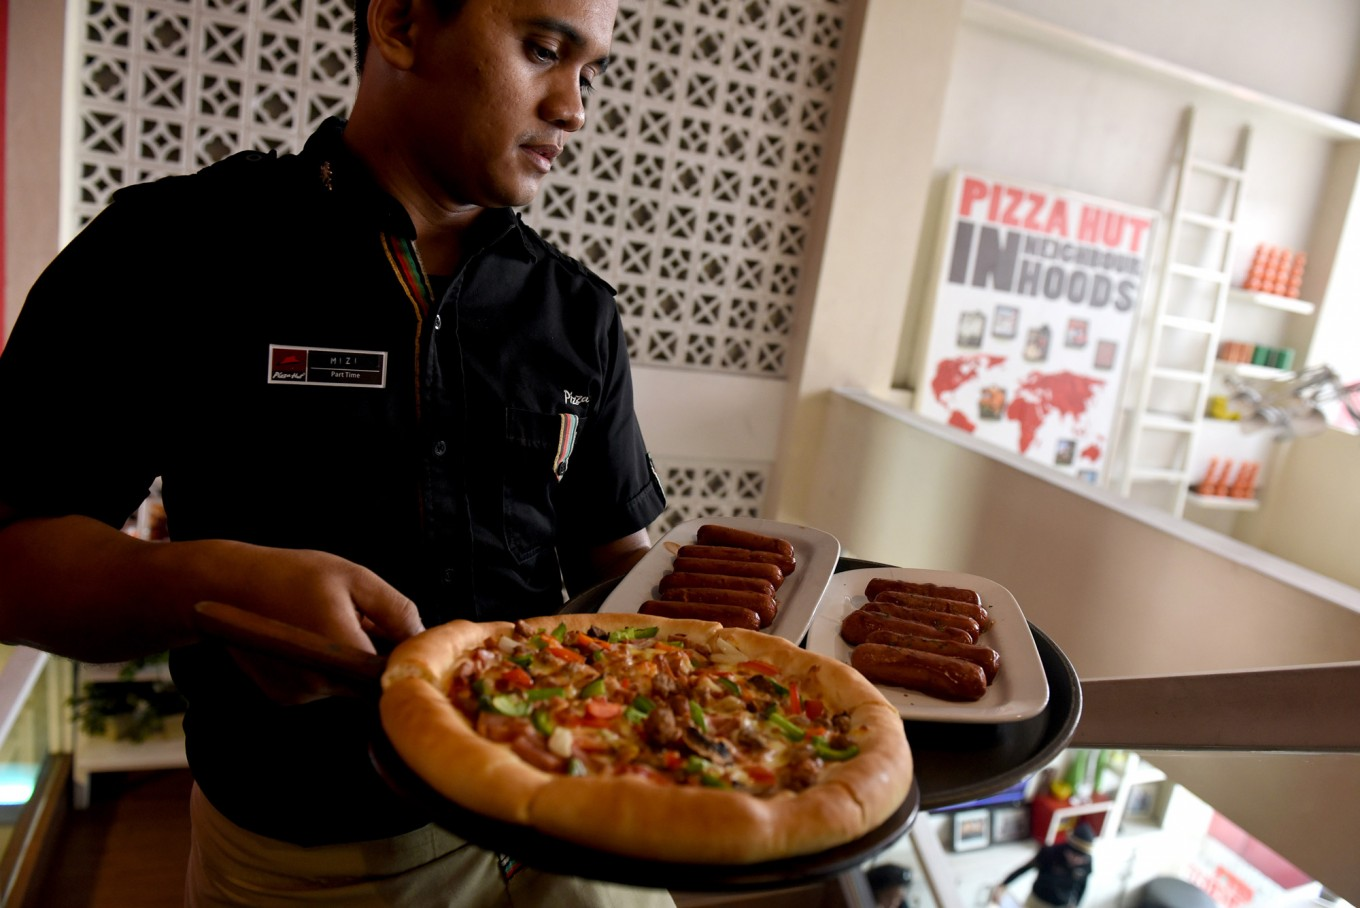 Pizza Hut franchisee books solid profit growth, eyes eastern expansion - The Jakarta Post - Jakarta Post